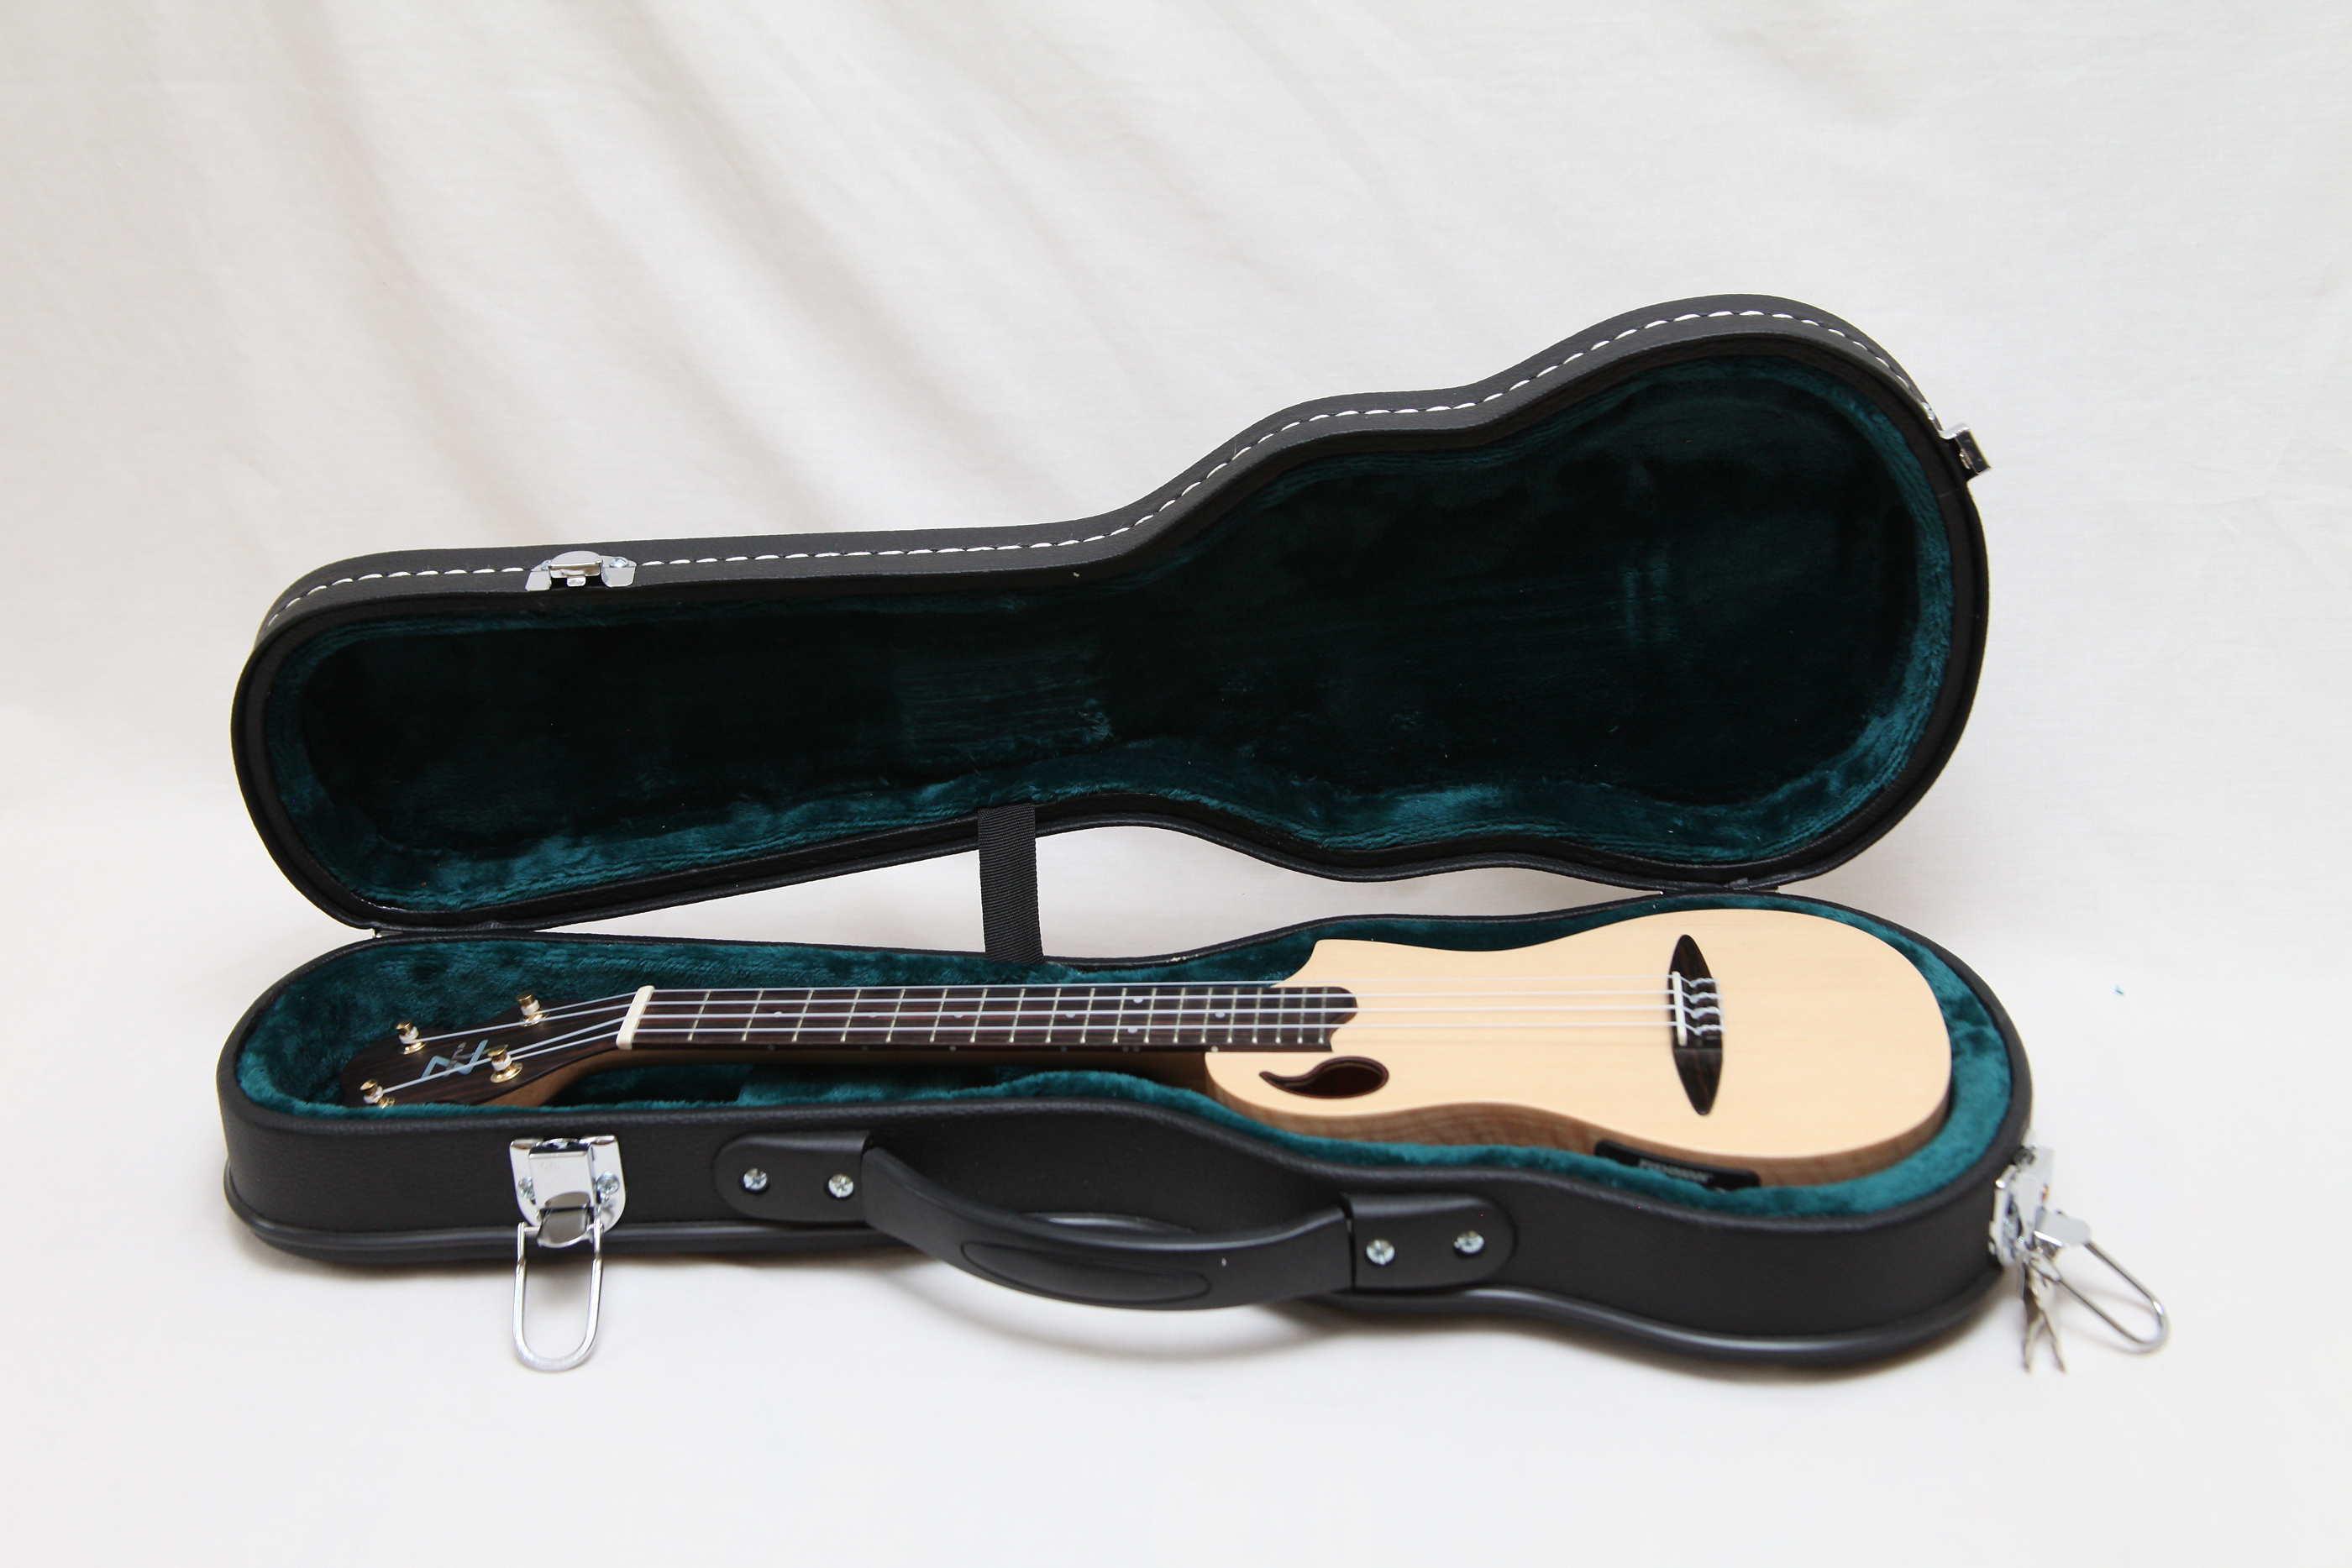 ZT Soprano Ukulele in maple in fitted case